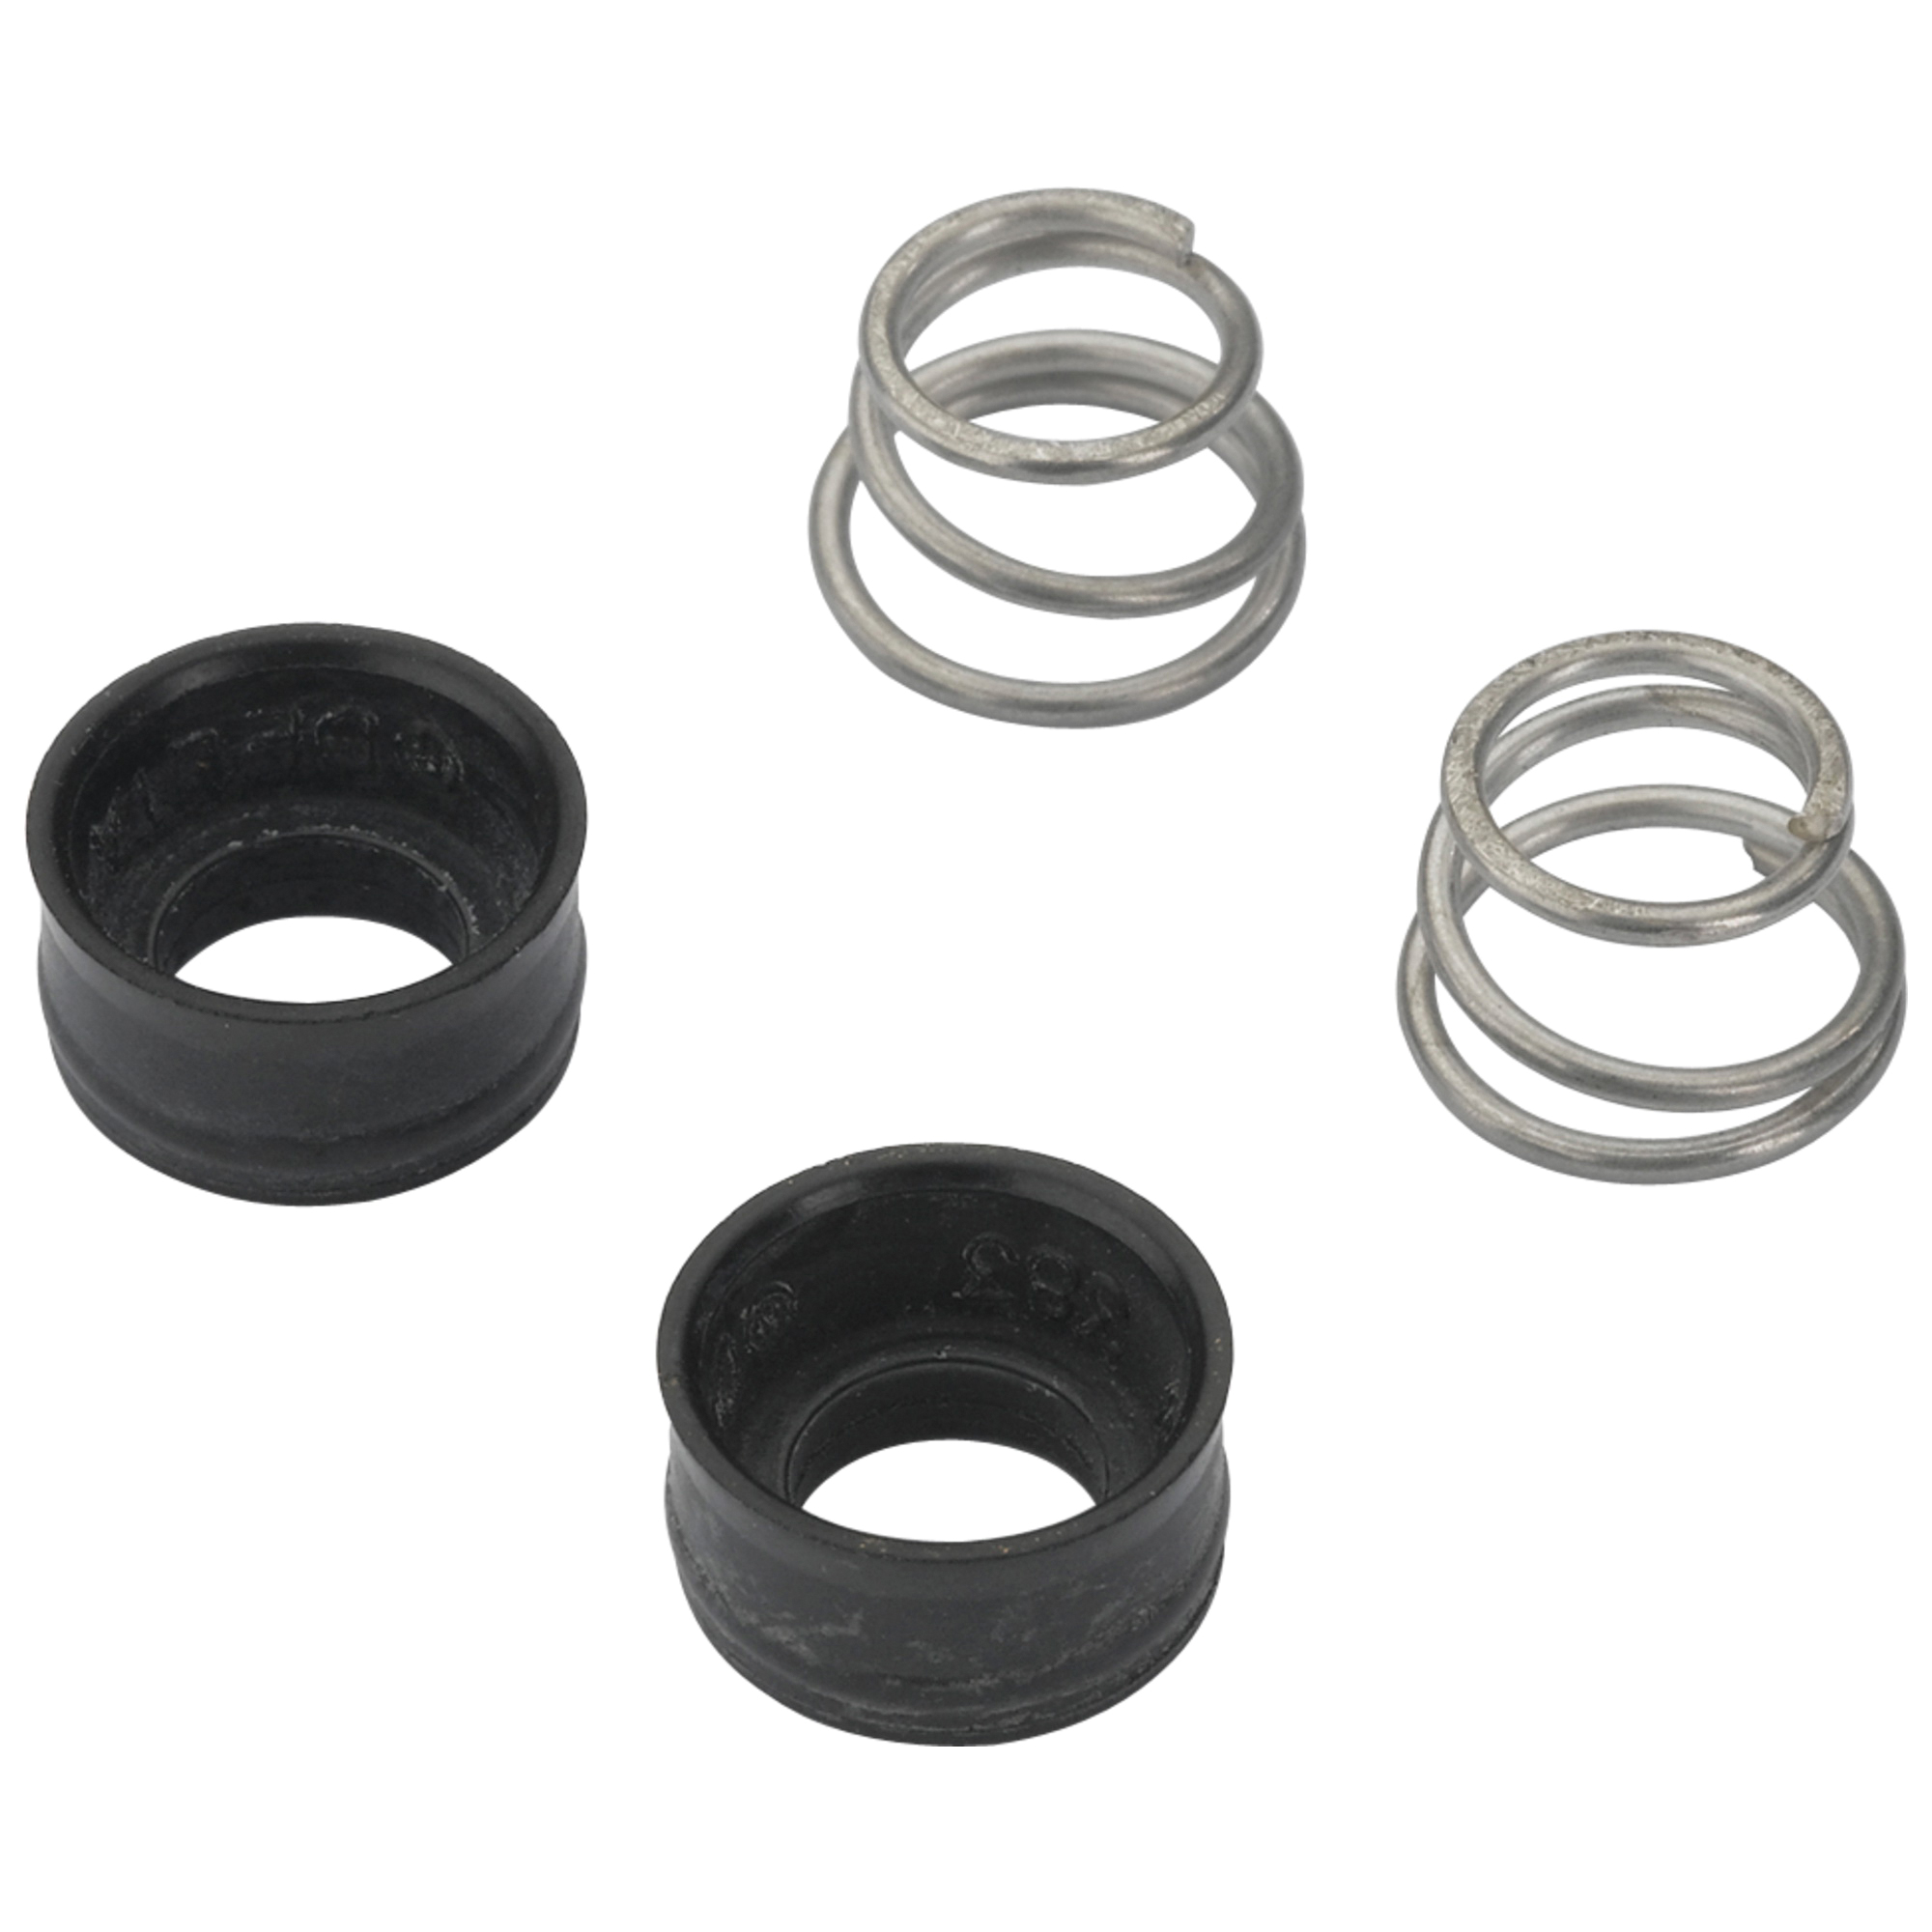 DELTA® RP4993 Replacement Seats and Springs Kit, For Use With Kitchen and Bath Valve, Import